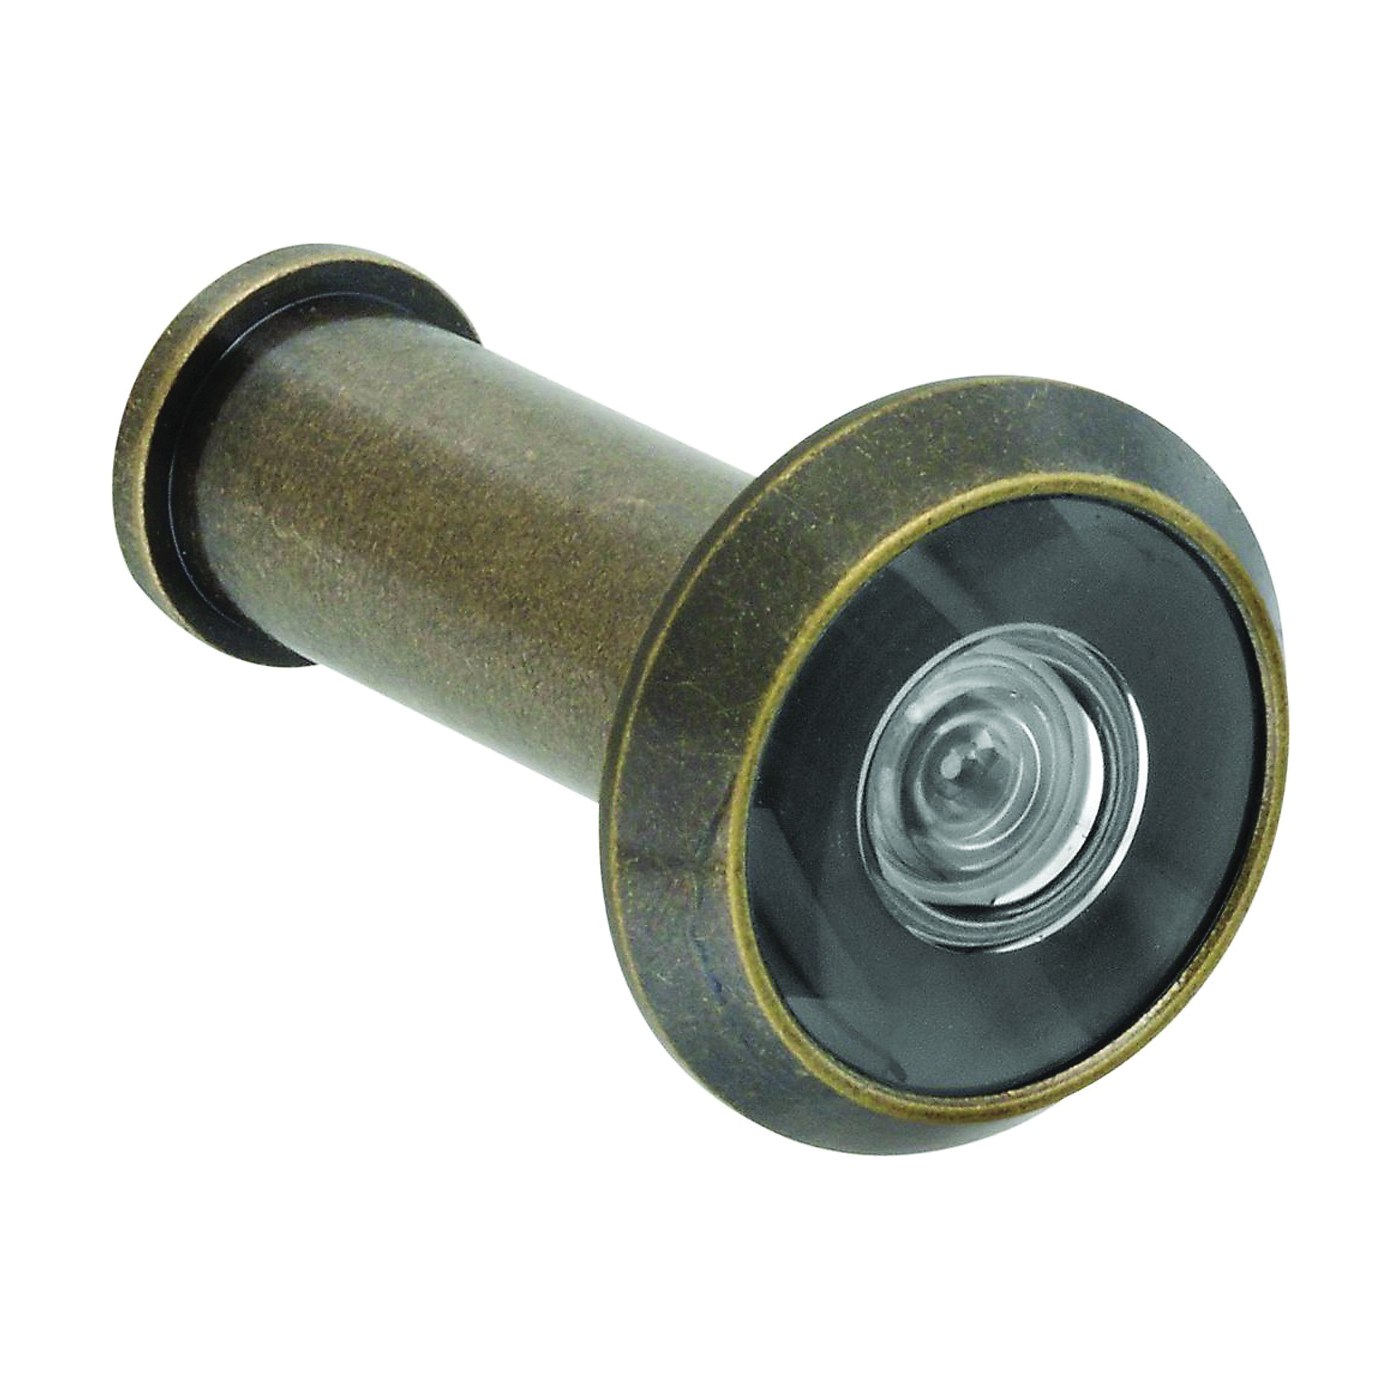 Picture of National Hardware V805 Series N336-107 Door Viewer, 200 deg Viewing, 1-3/8 to 2 in Thick Door, Brass, Antique Brass